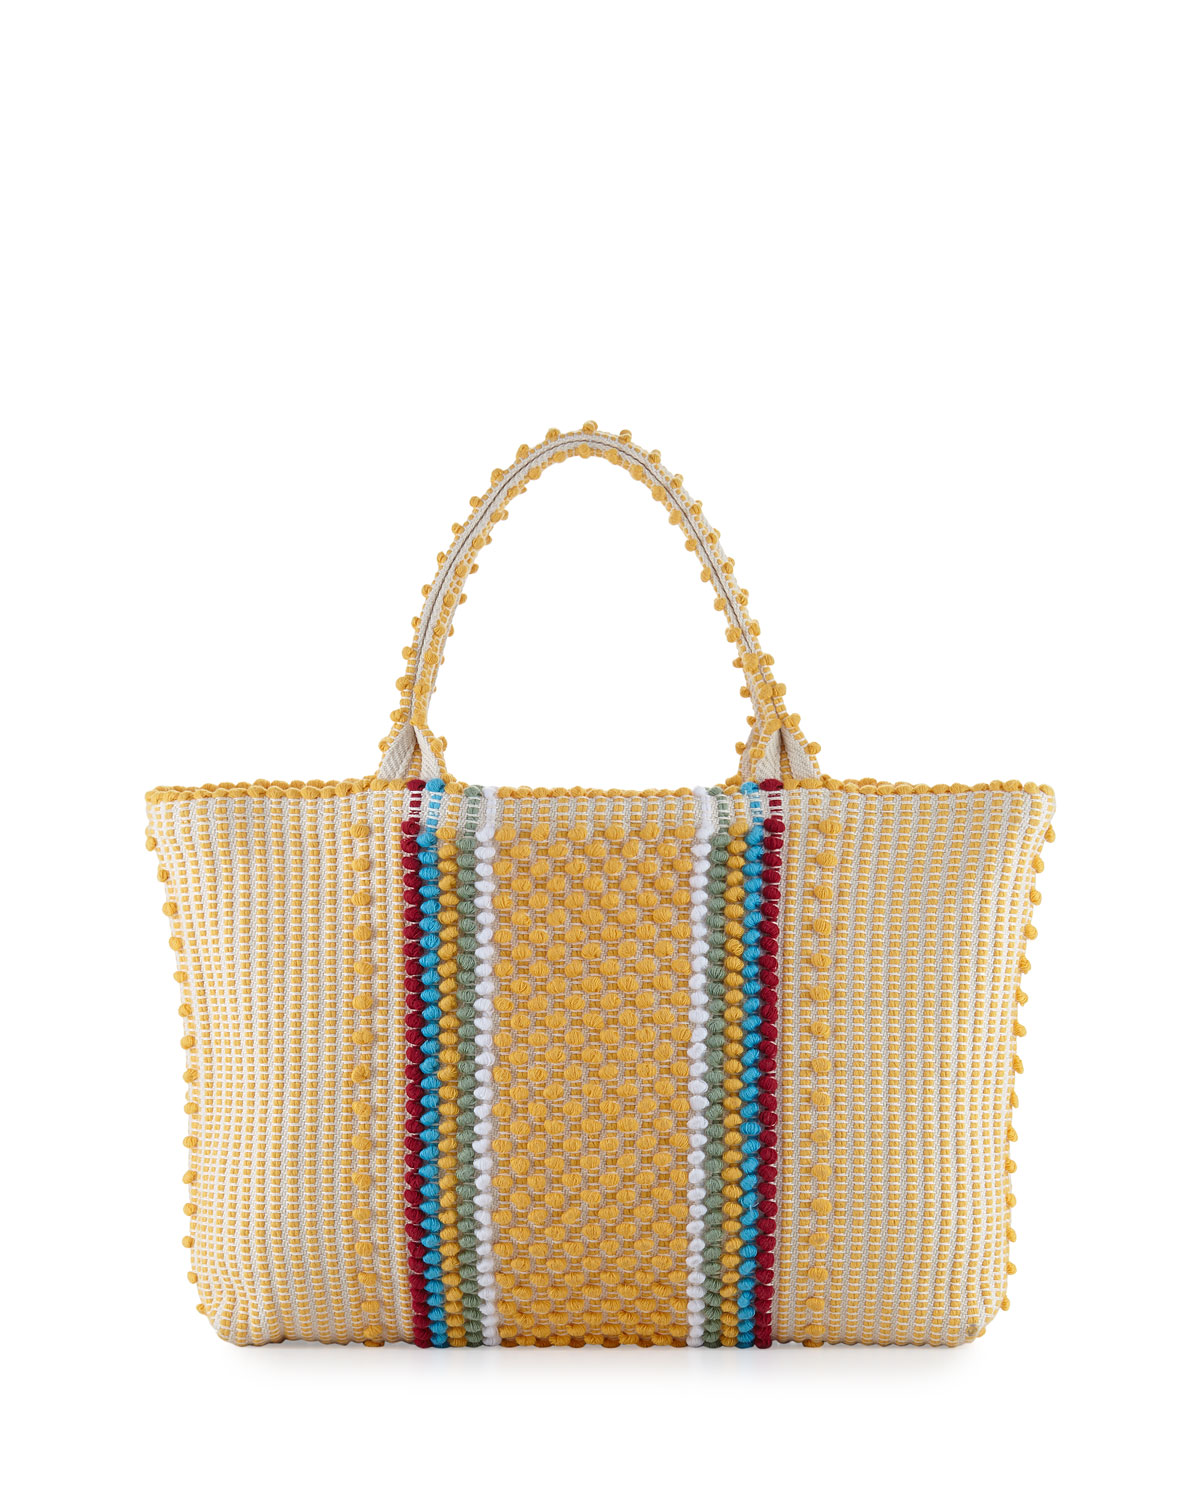 Antonello TELTI CROCHETED TOTE BAG